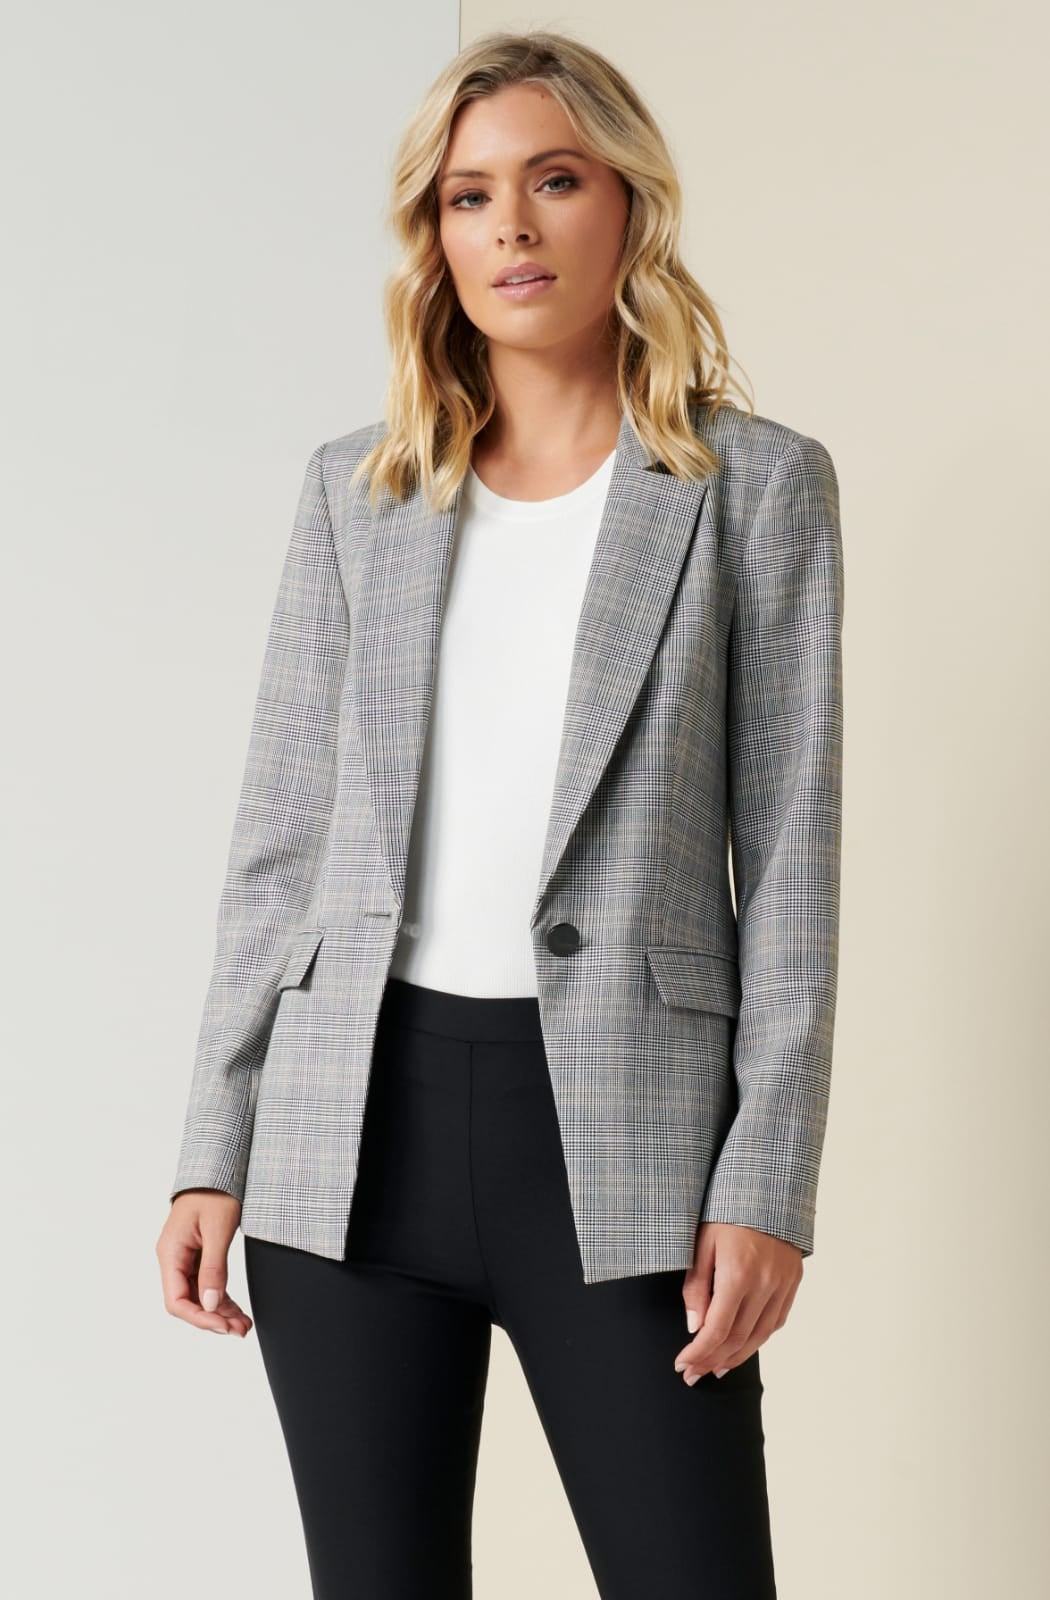 Forever New Clothing   Women's Workwear